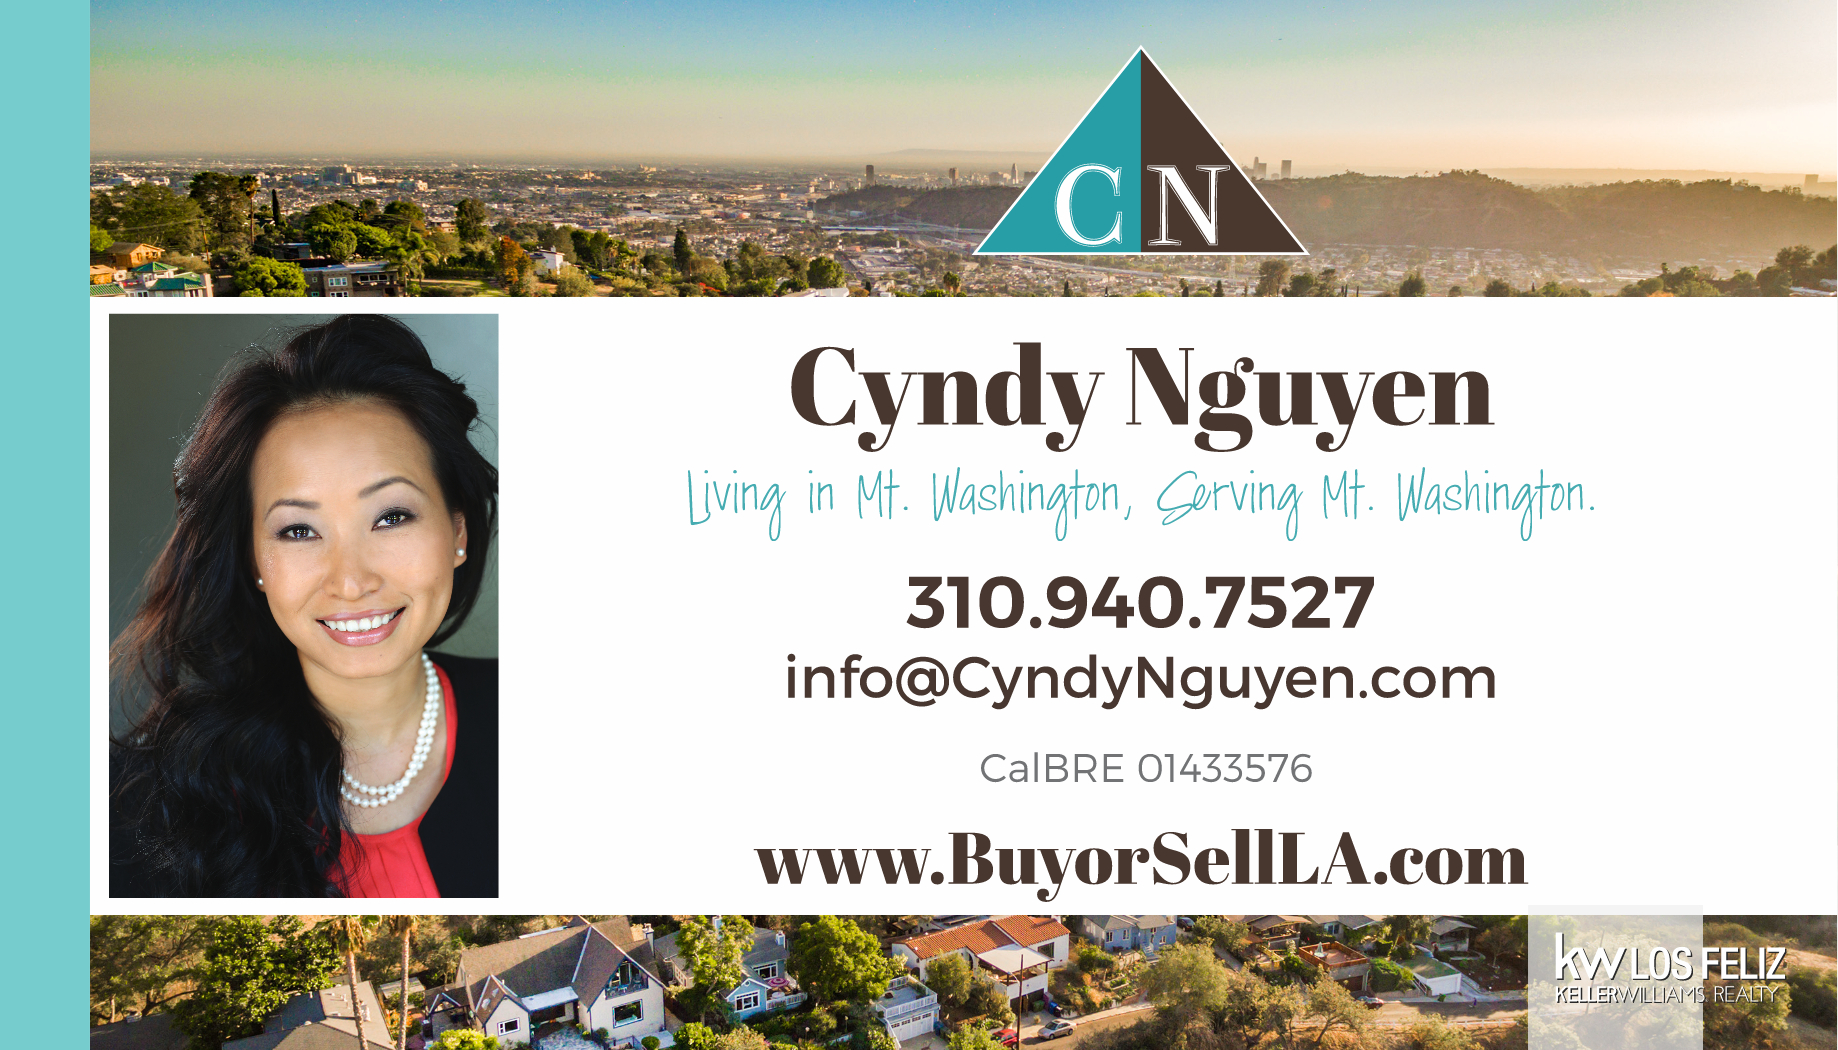 Cyndy Nguyen  (310) 940-7527  https://www.buyorsellla.com/   Cyndy Nguyen has been working as a full-time real estate professional since 2004, but her love and passion for real estate started when she was quite young.  Born and raised in Vietnam, Cyndy eventually made her way to the Redondo Beach community in 1999, and then eventually onto Mt. Washington; Northeast Los Angeles where she settled with her beautiful family, and where she continues to live and work today.  Her enthusiasm for the business pours out across all aspects of her life. She loves making friends out of strangers, taking risks, negotiating competitive contracts, and overcoming challenges that often occur in a real estate transaction. She treats her clients as if they were her own family, always striving for their successes as if they were her own personal goals.